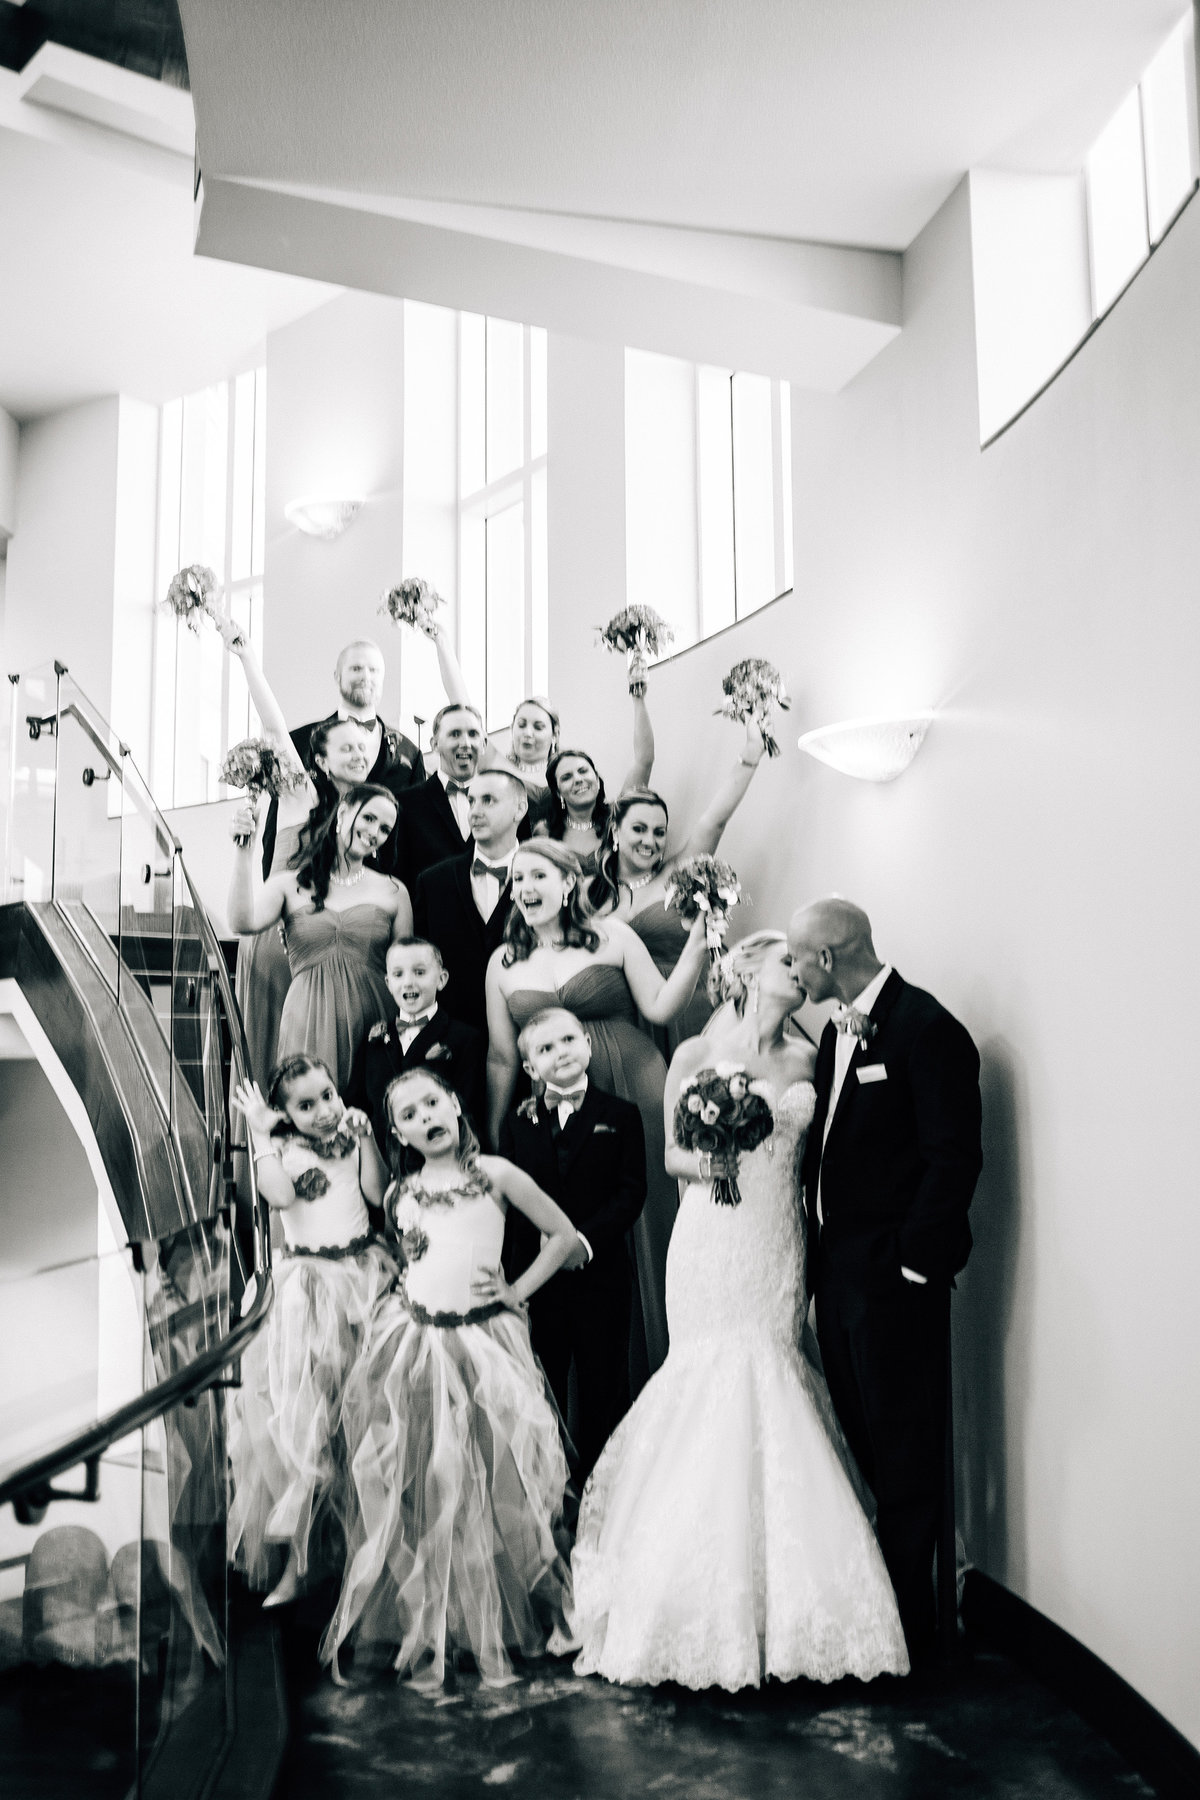 Kimberly_Hoyle_Photography_Milam_The_Back_Center_Melbourne_Wedding-43